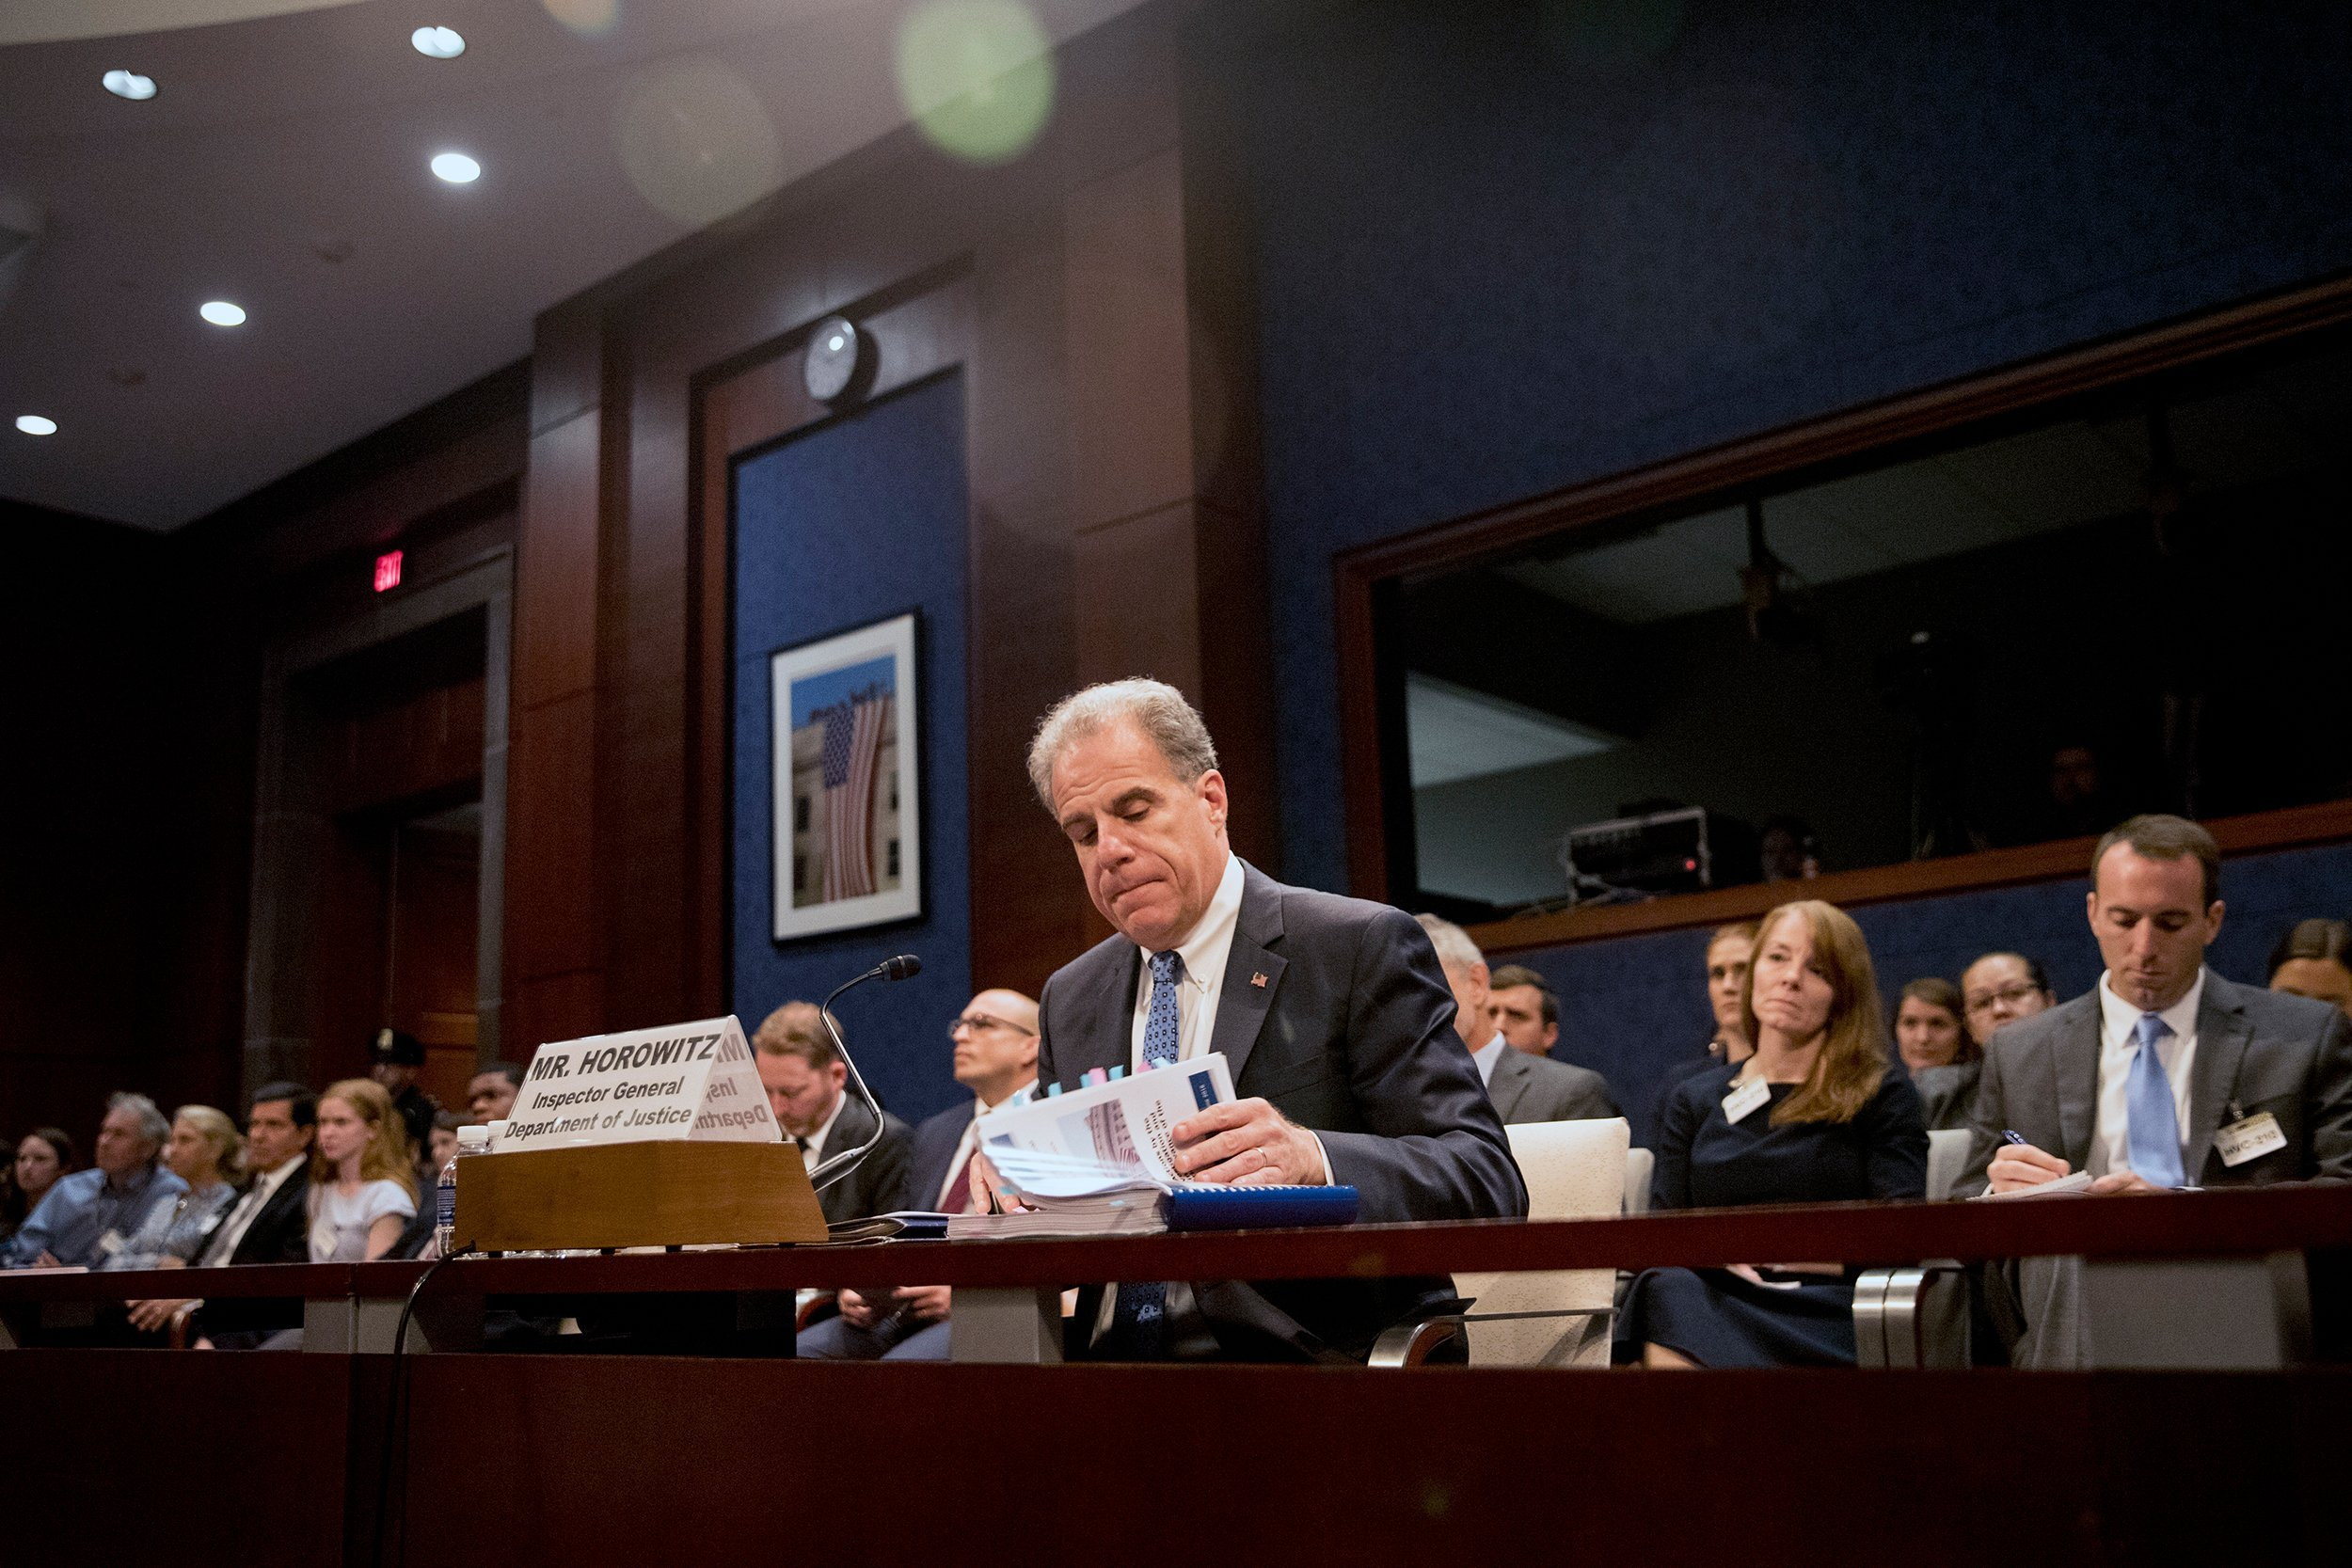 DOJ inspector general scheduled to testify about Russia report